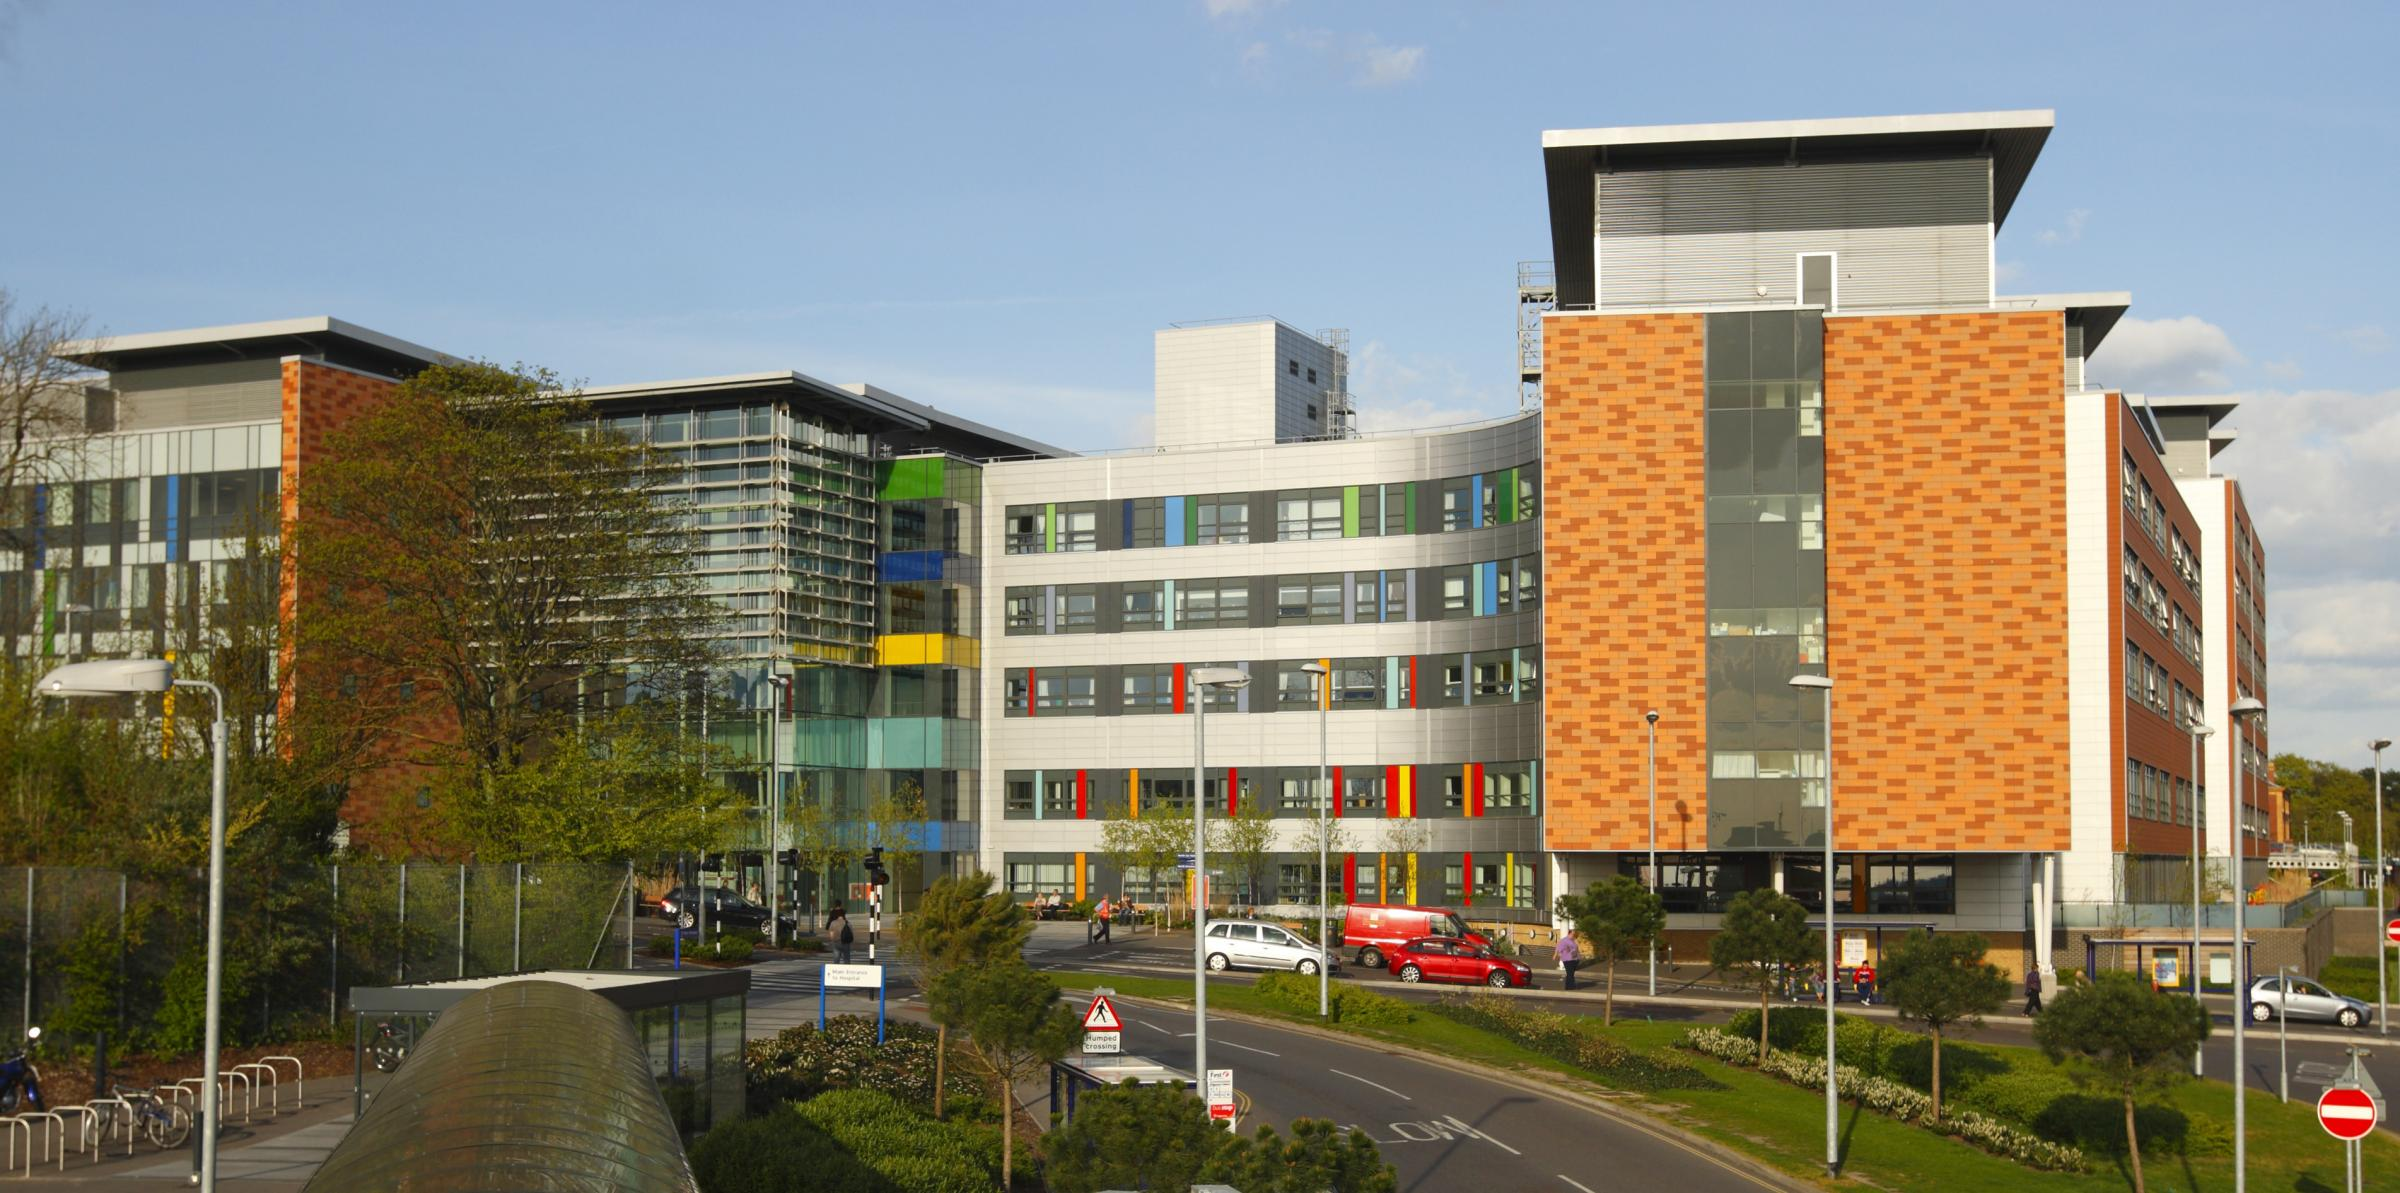 Queen Alexandra Hospital - where the three-month-old baby died - Chris Ison/PA Wire.